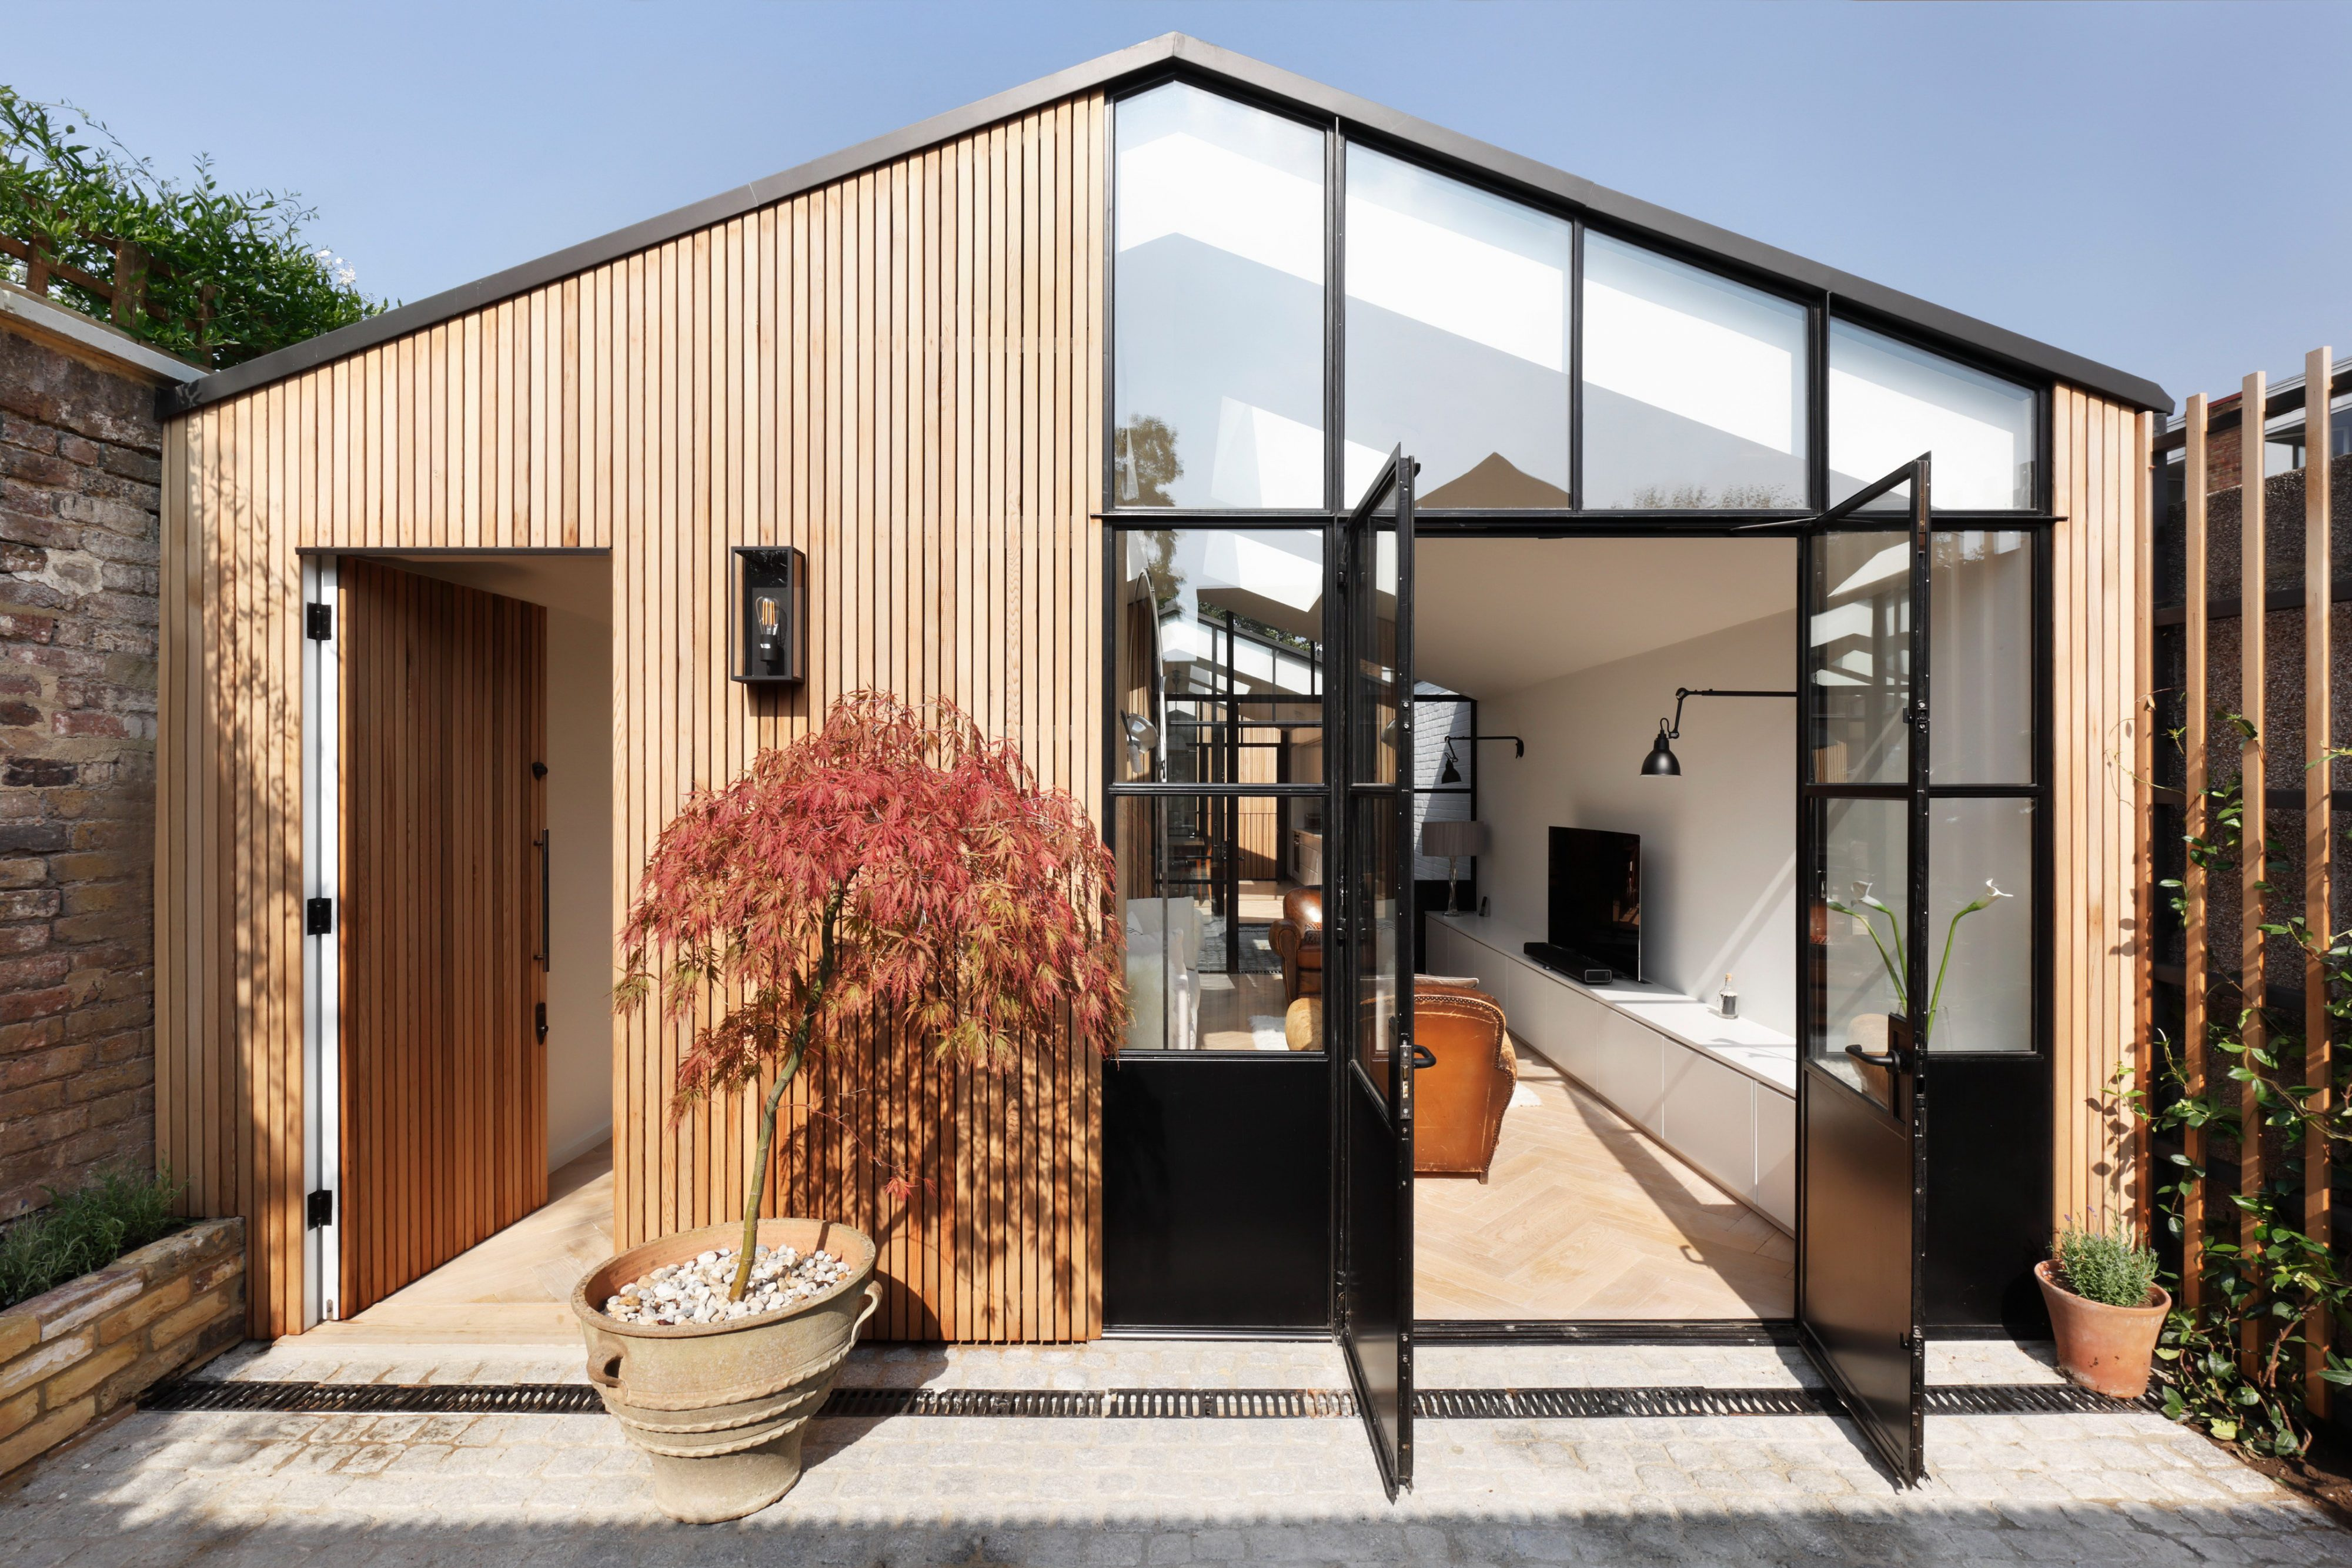 The Courtyard House by De Rosee Sa Architects